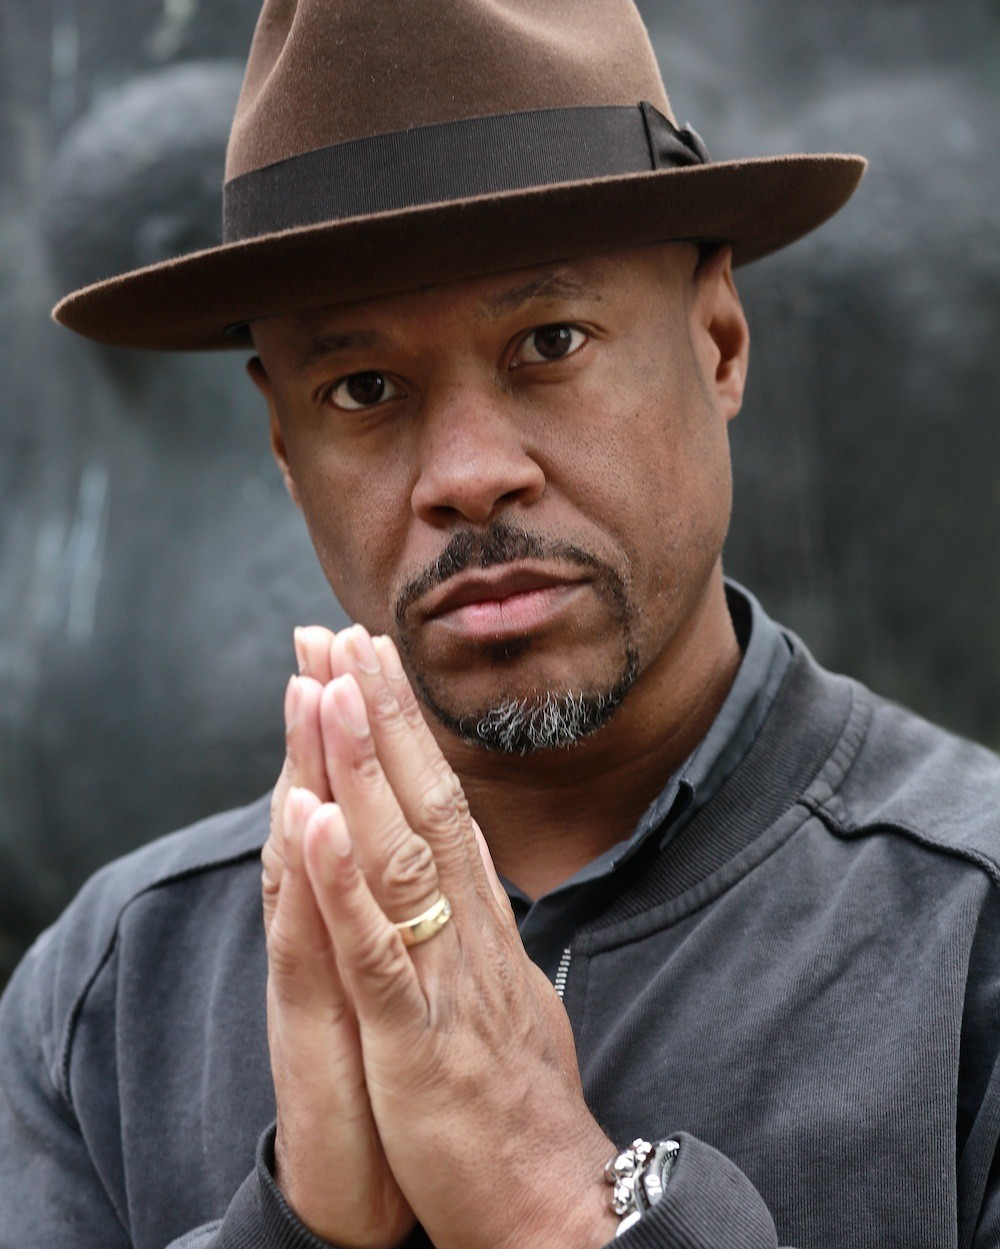 Robert Hood on Techno, Spirituality, and Police Brutality in America